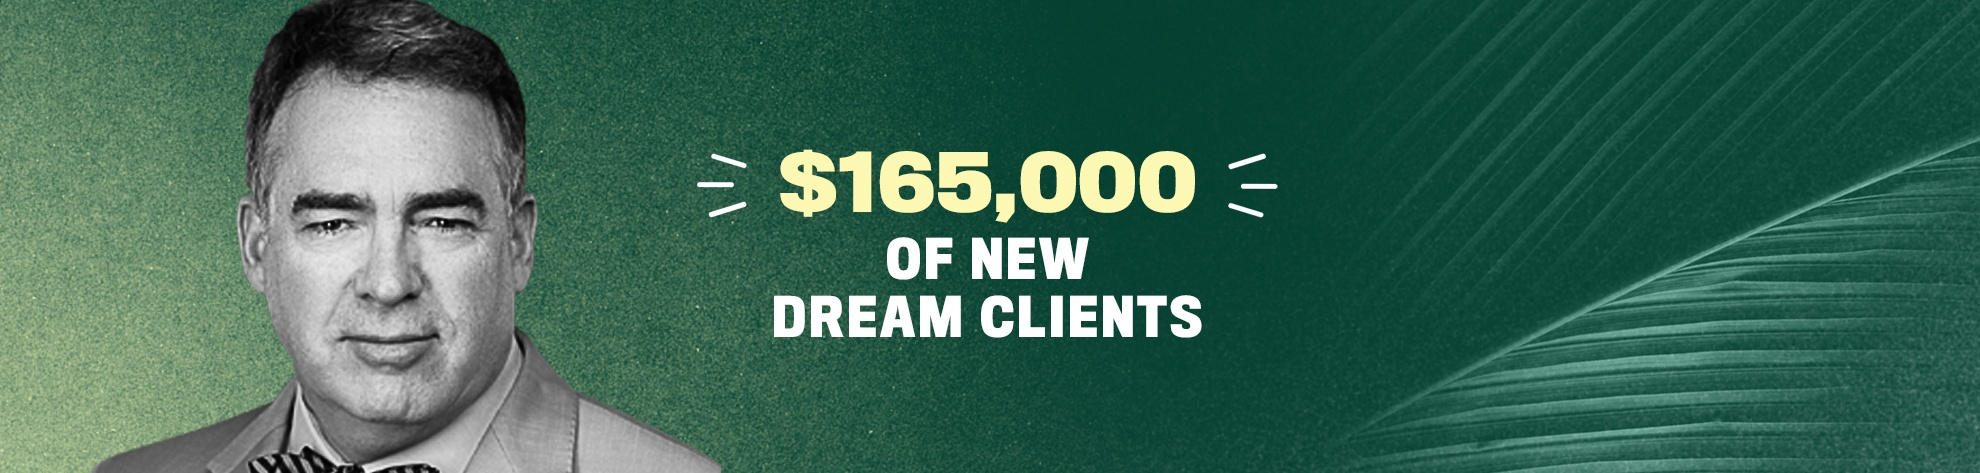 How This Accountant Connected With His Dream Clients & Increased His Firm's Worth By $165,000